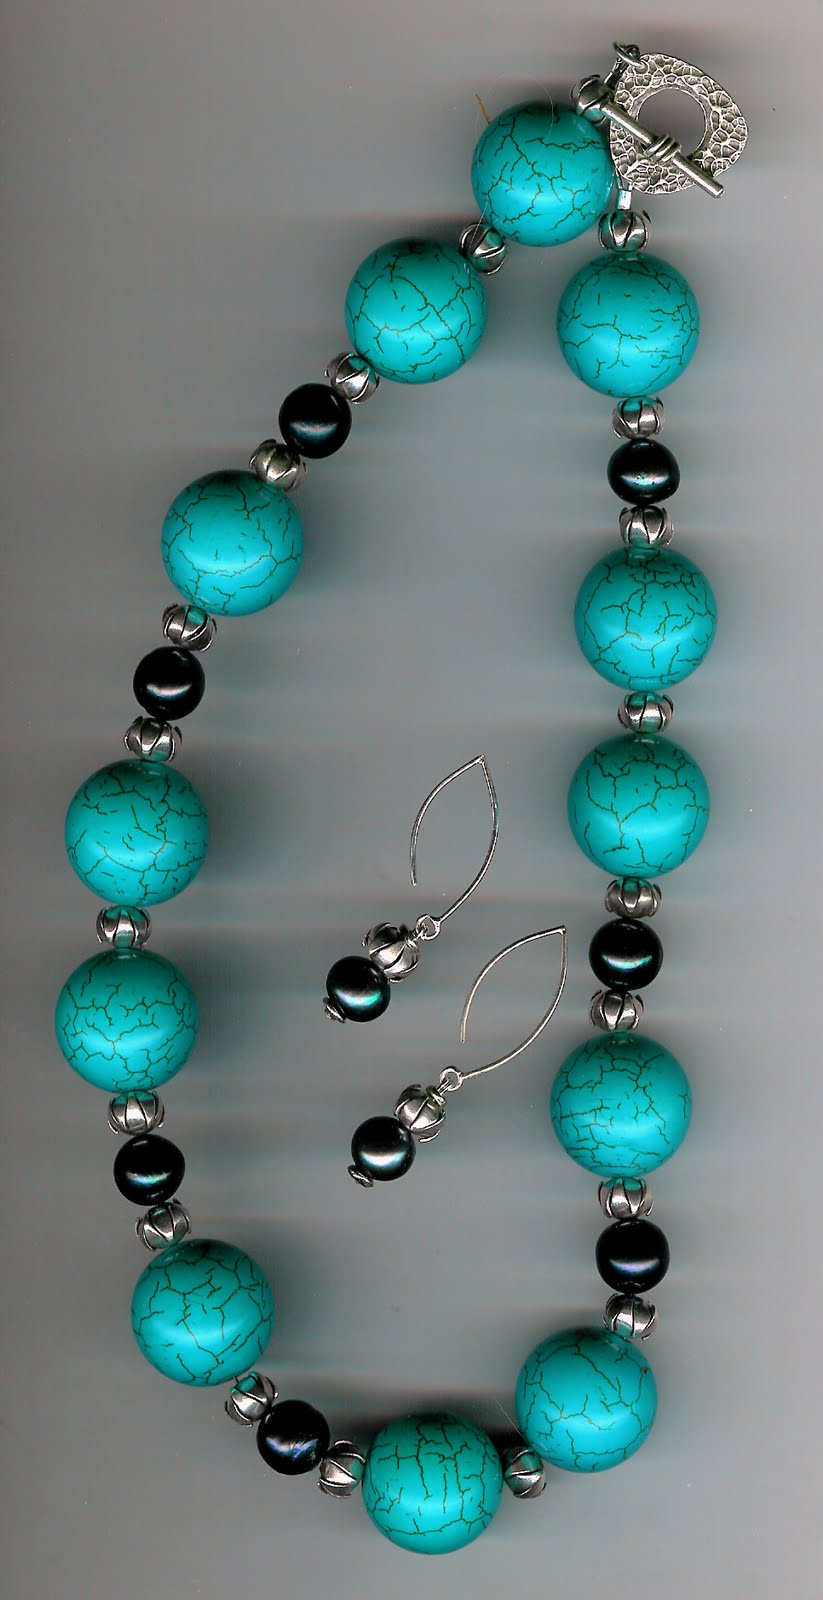 232. Turquoise, Akoya Pearls and Thai Sterling Silver